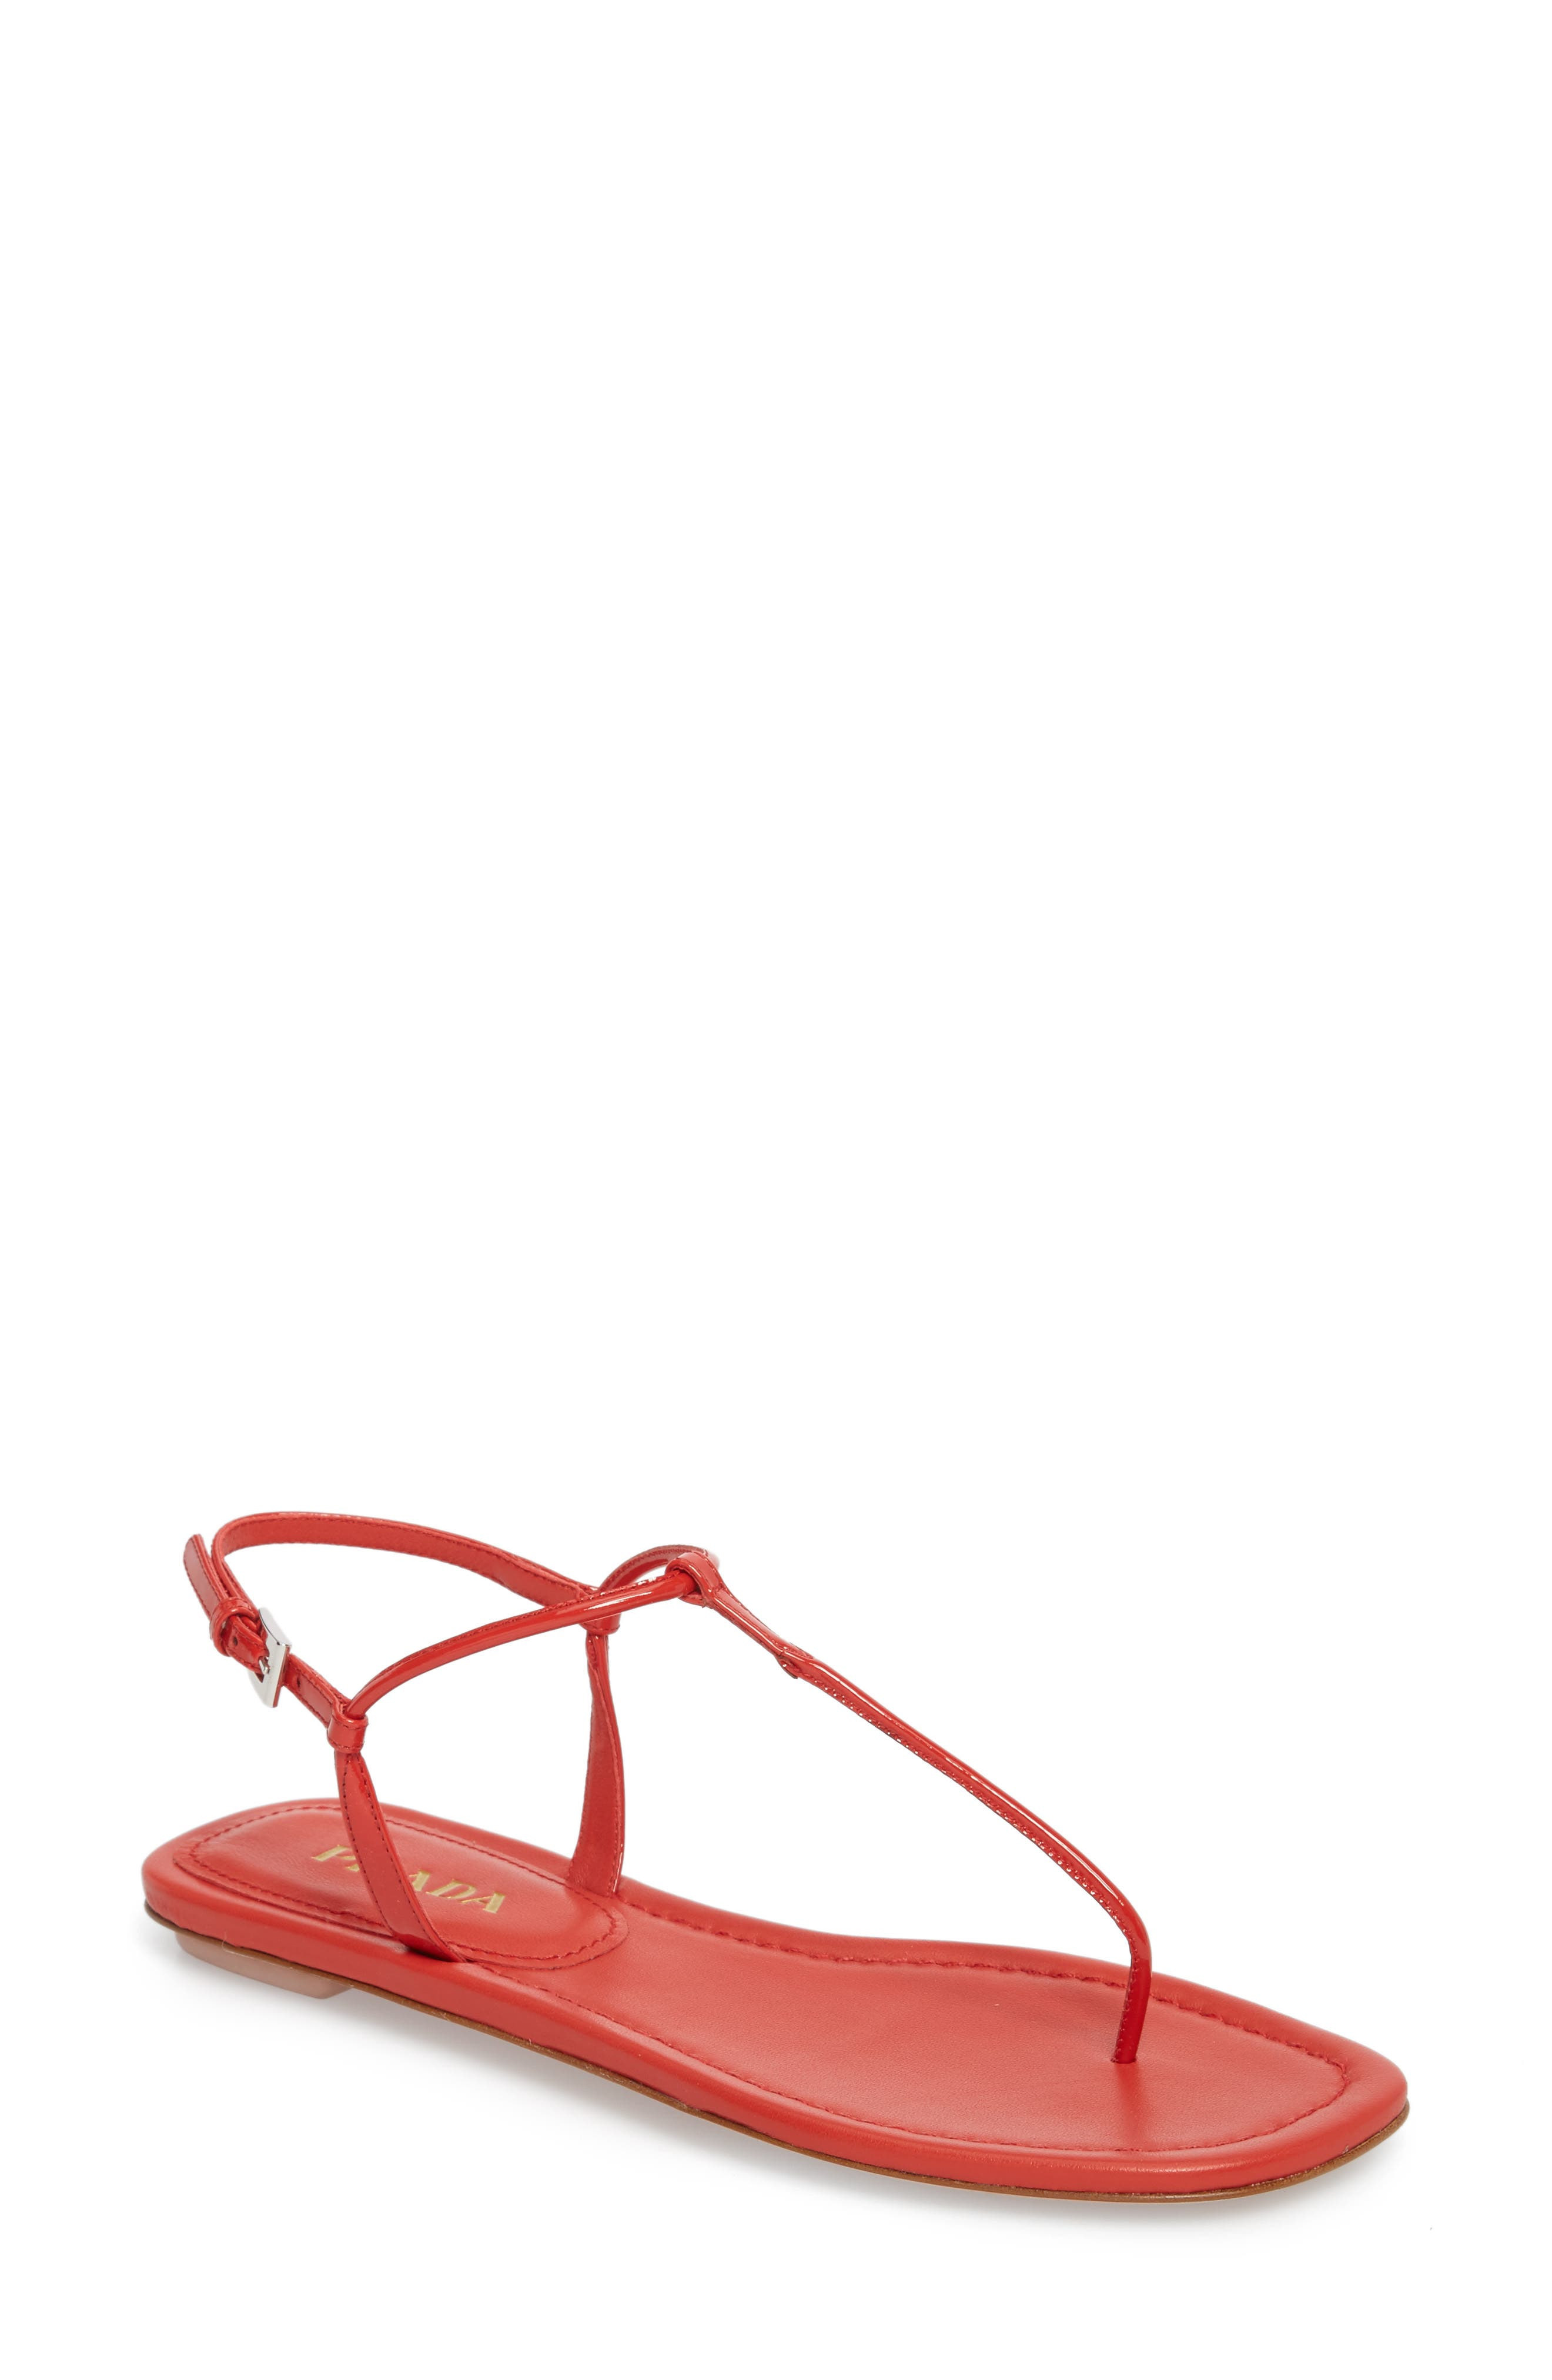 Thong Sandal,                         Main,                         color, Red